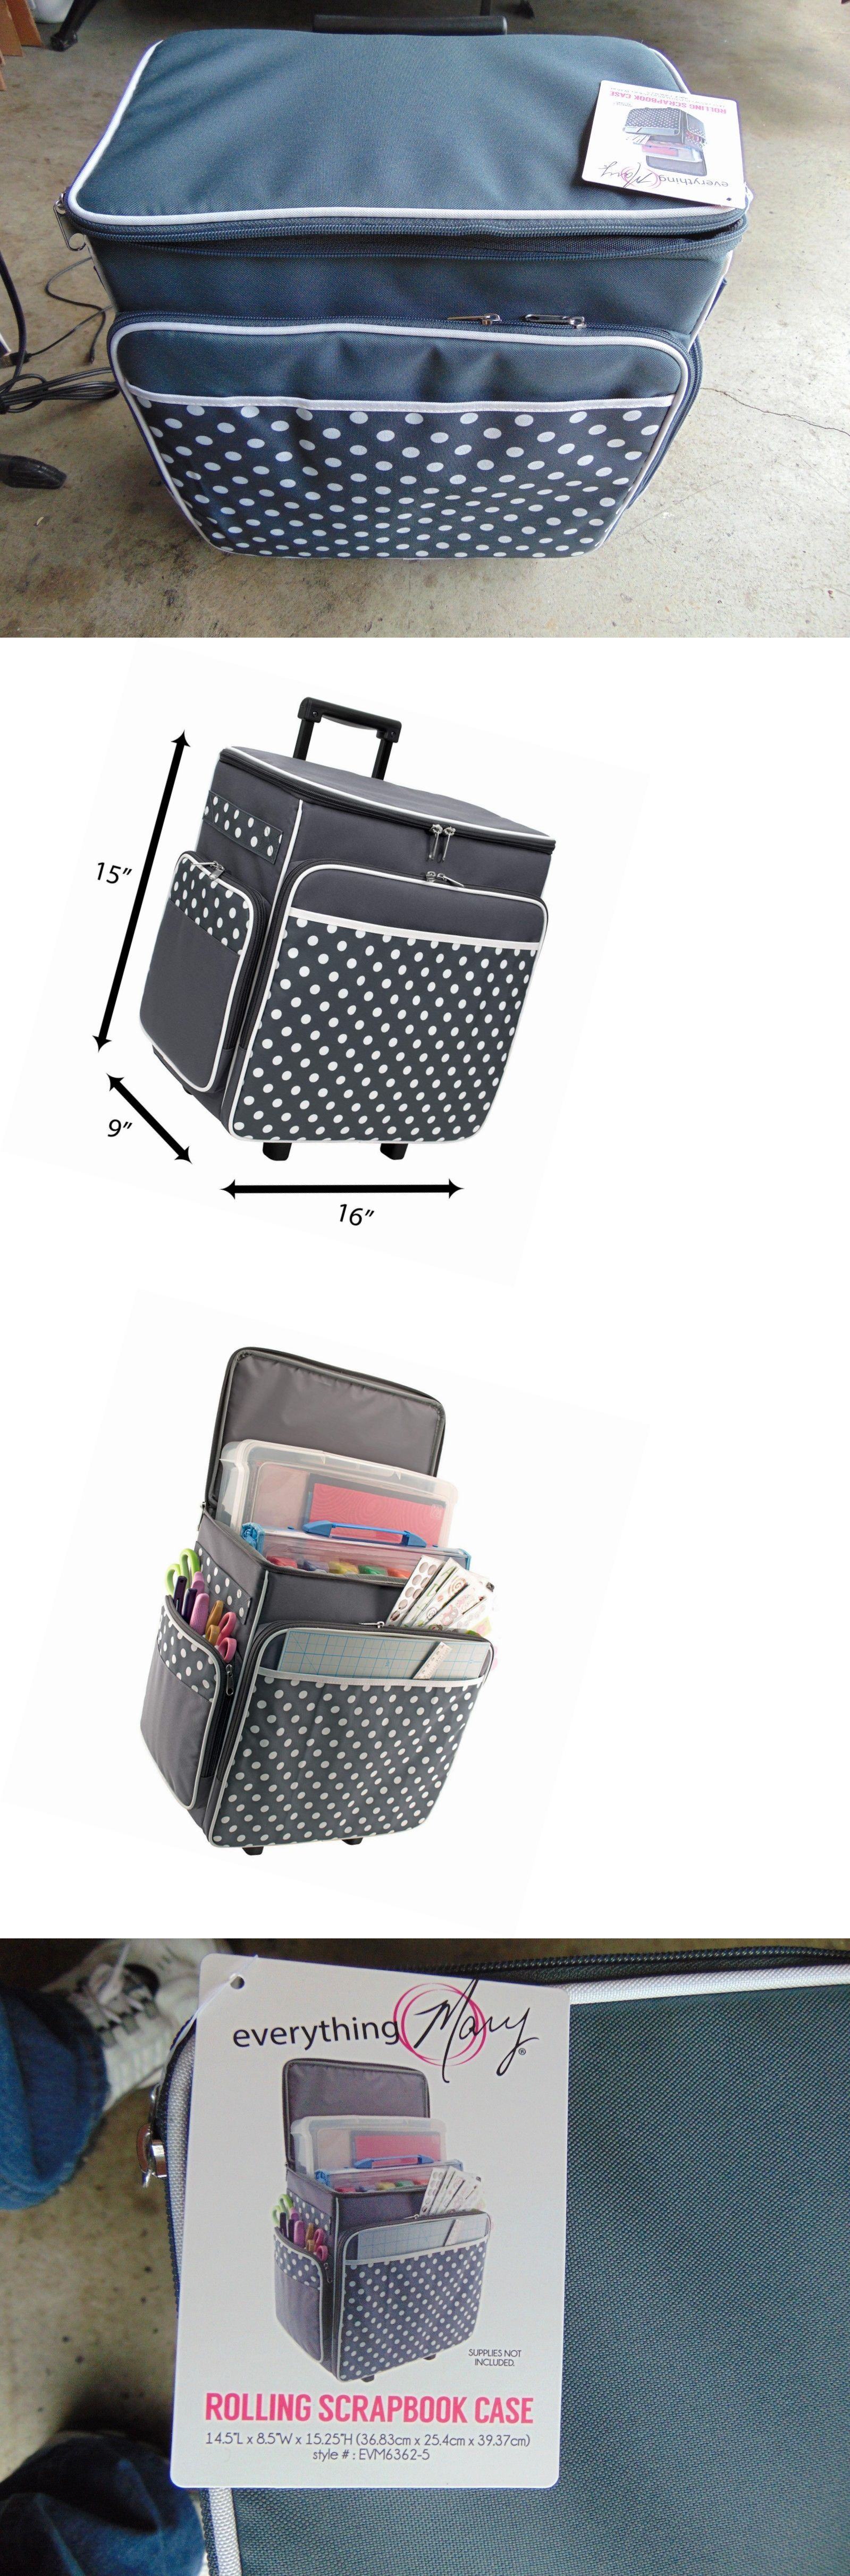 Scrapbooking Totes 146401  Everything Mary Grey Polka Dot Rolling Scrapbook  Storage Tote -Scrapbook Case -  BUY IT NOW ONLY   57.99 on  eBay   scrapbooking ... cd3c69b3a1